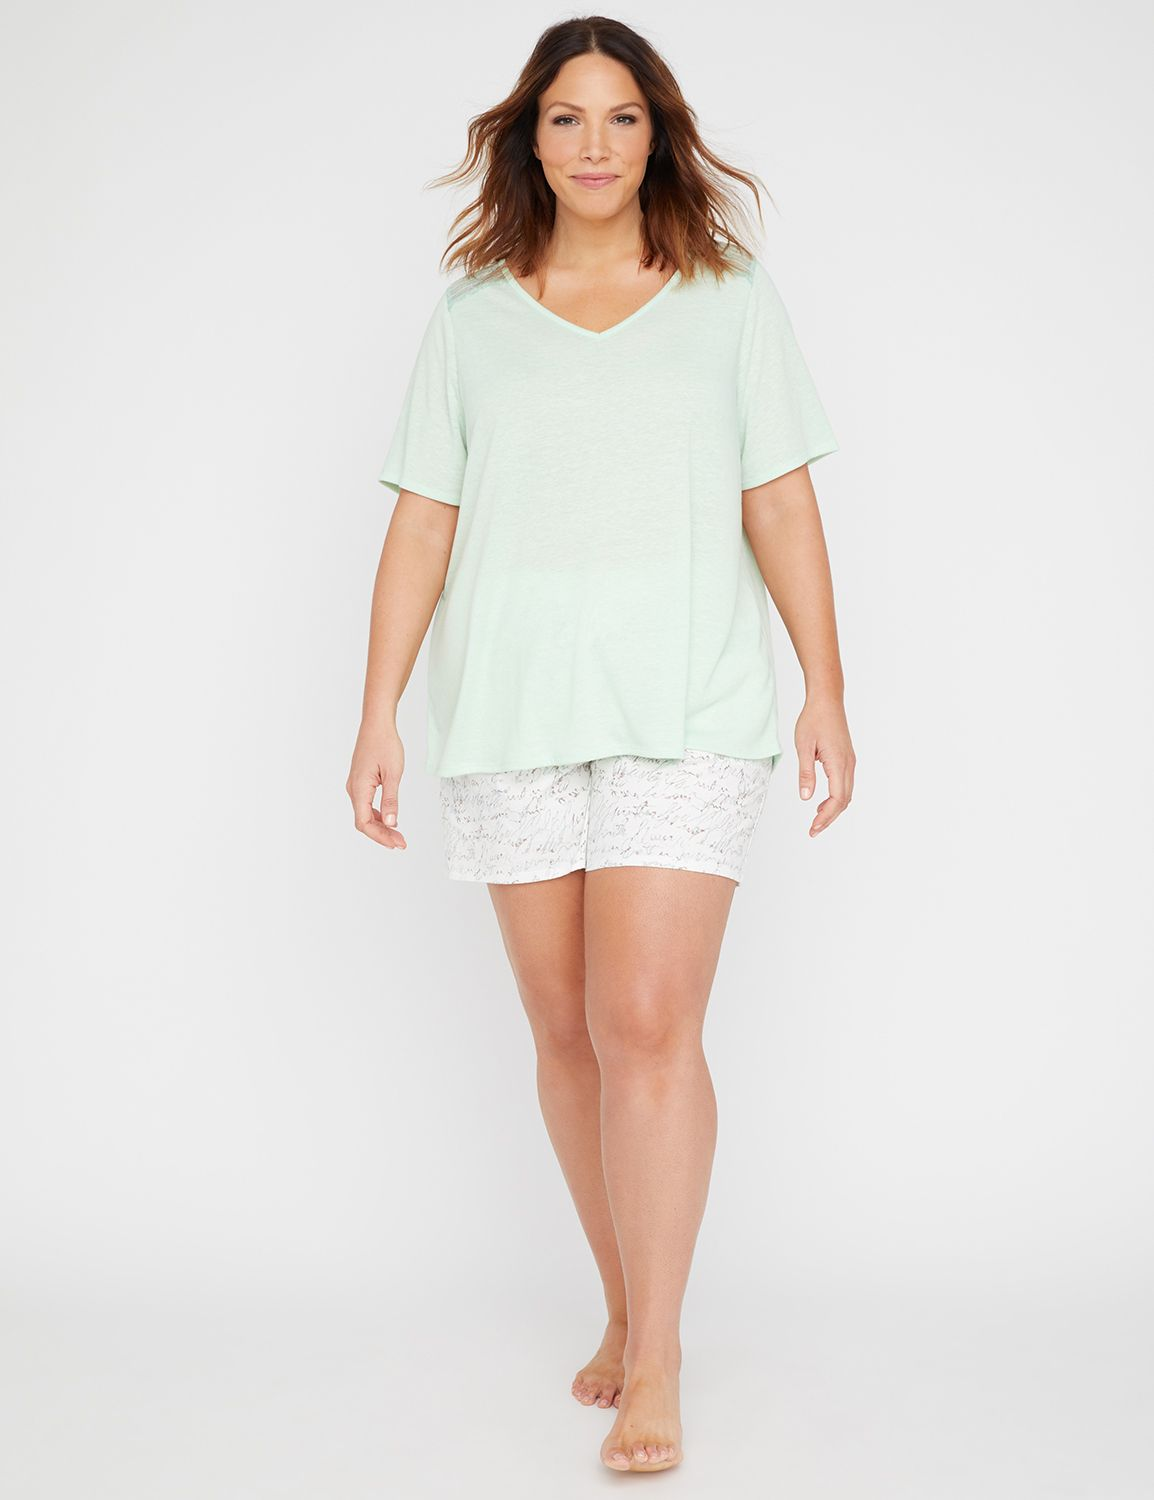 "A sleep tee in super-soft, jersey knit with sheer lace insets at each shoulder for a subtle touch of romance. V-neck. Short sleeves. Pairs beautifully with out Script Print Sleep Short. Item Number #314968, 85% Polyester/15% Linen, Machine Wash, Imported Plus Size Sleepwear, Length: 29"" , Plus Sizes 0X-5X, Catherines Plus Sizes"